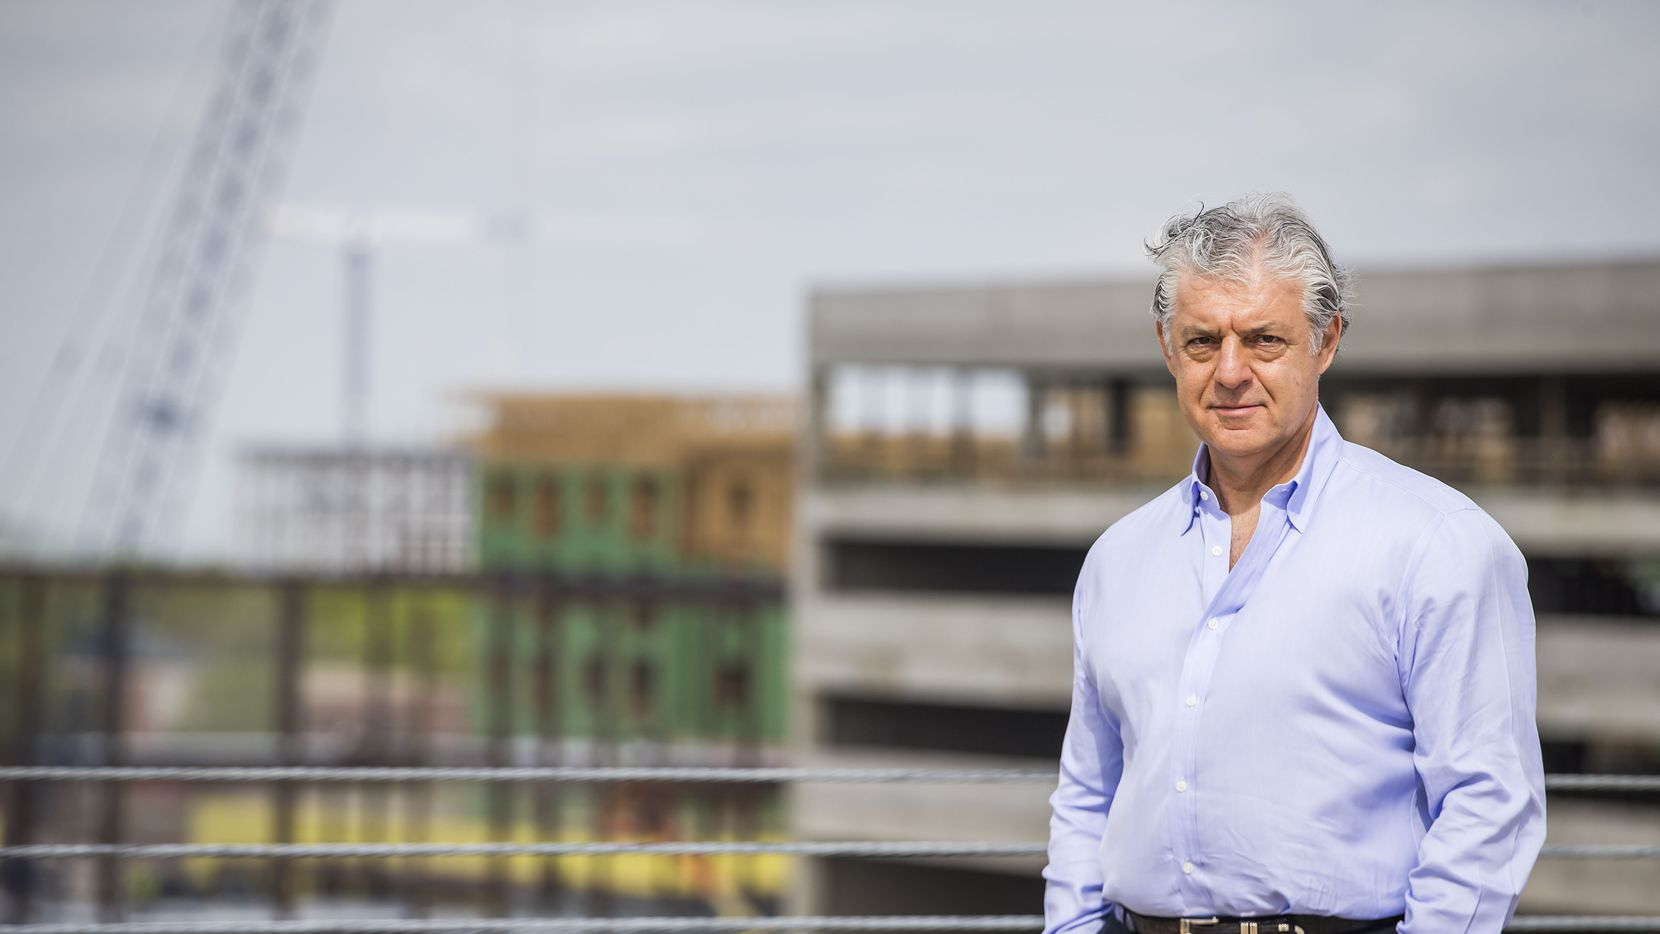 Developer Fehmi Karahan is finishing up work on his $3 billion Legacy West project in Plano and is headed to Frisco to work on an even bigger deal.